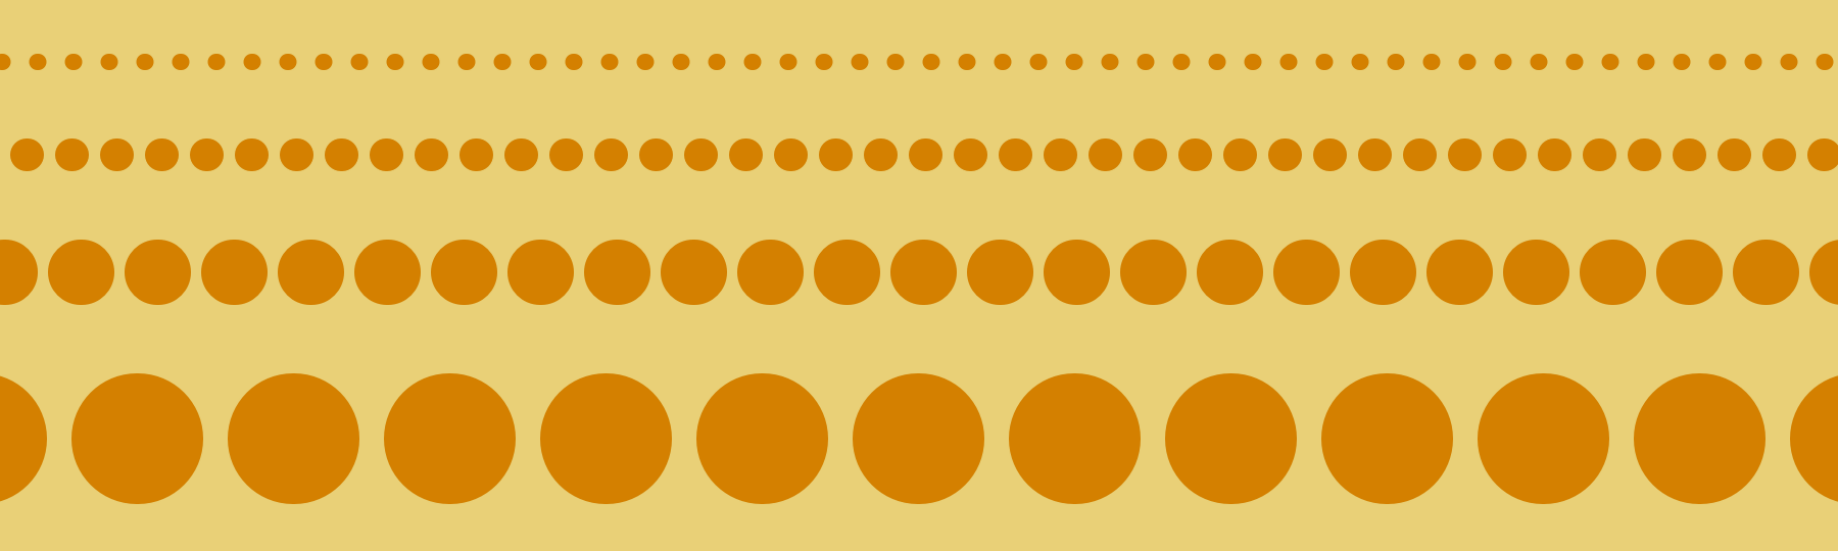 Creating True Dotted Borders with CSS - Lucas Lemonnier - Medium